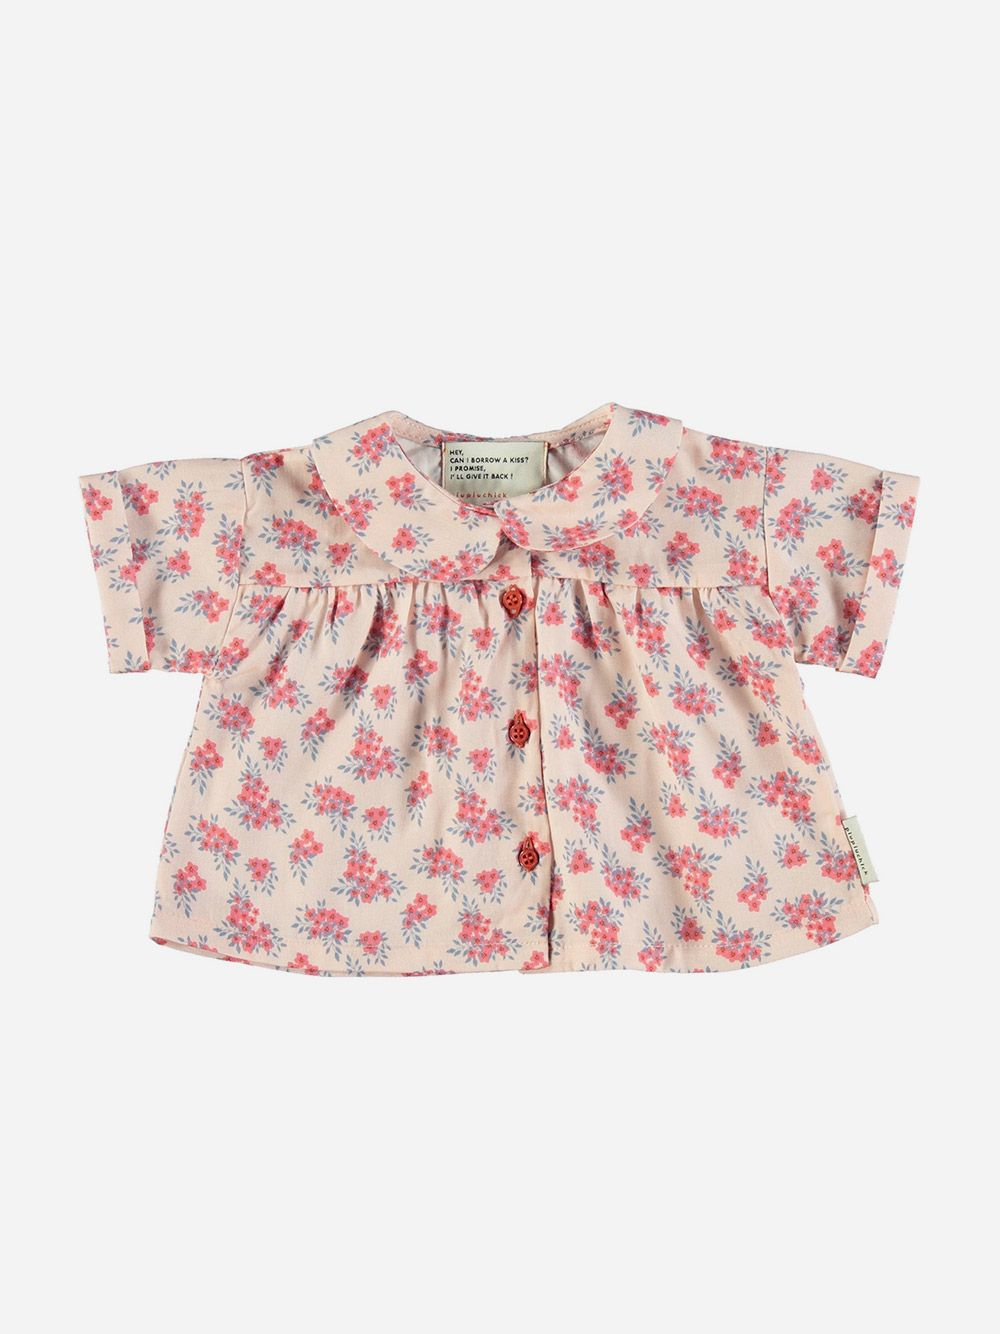 Baby Peter Pan shirt Pale Pink with Flowers